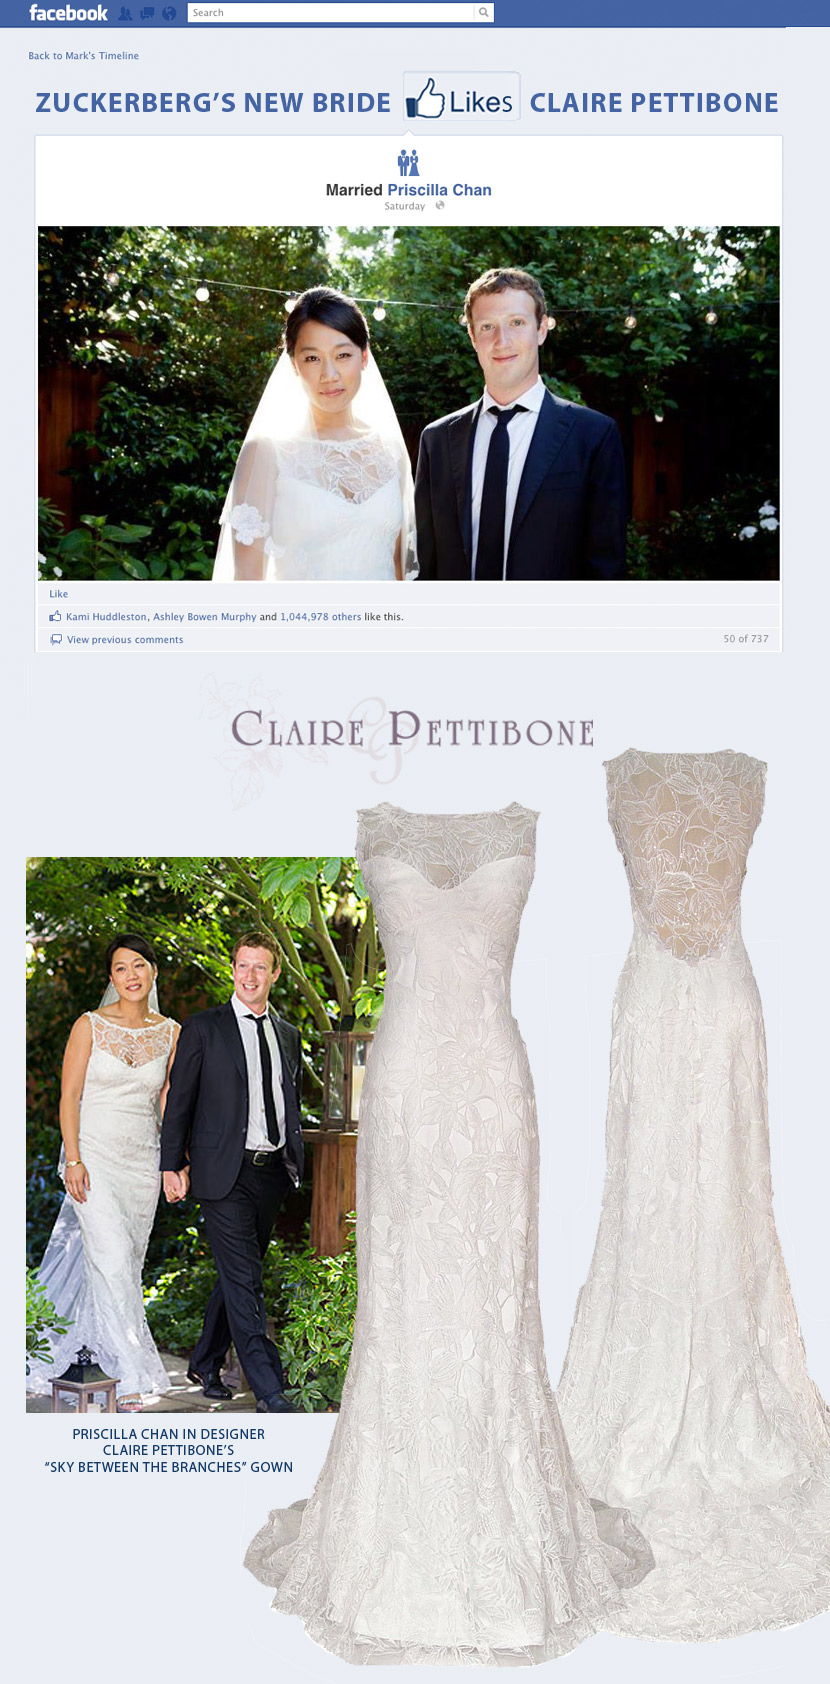 Mark Zuckerberg marries Priscilla Chan Claire Pettibone dress